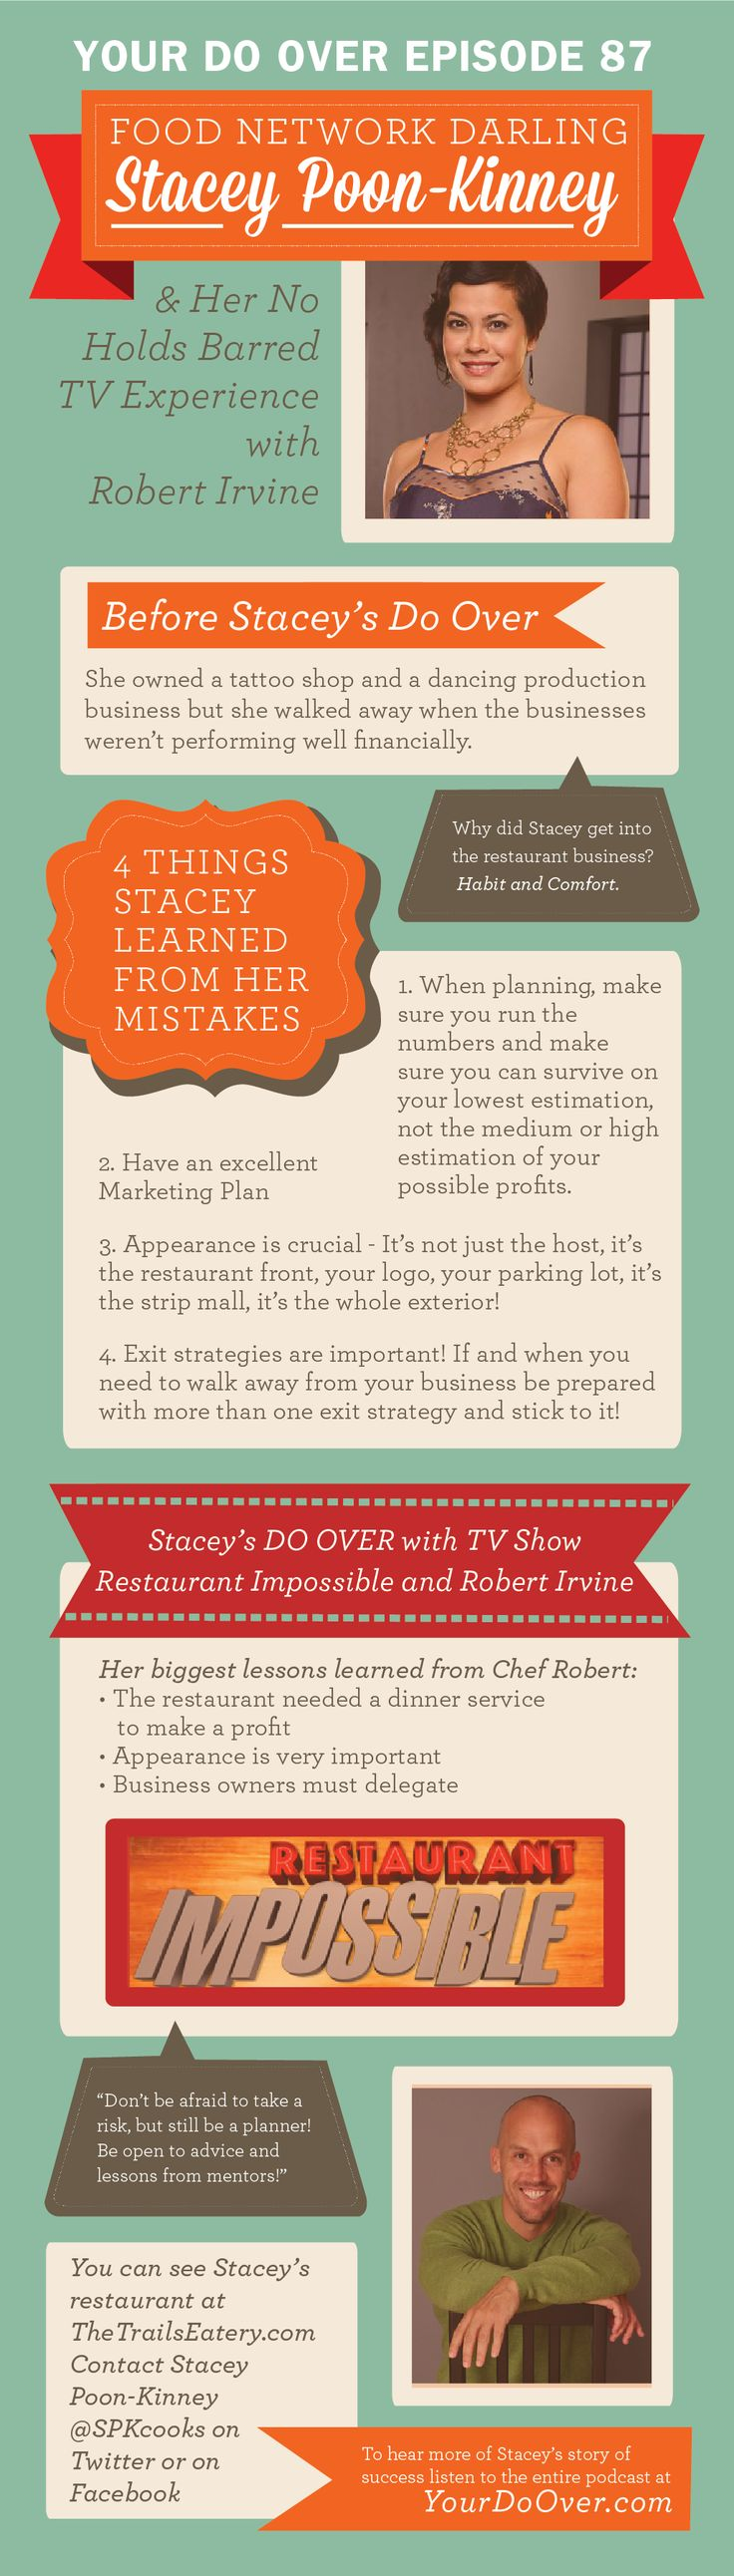 Check out this #infographic to learn more about Stacey Poon-Kinney's #DoOver and click to listen to her interview on the #podcast!